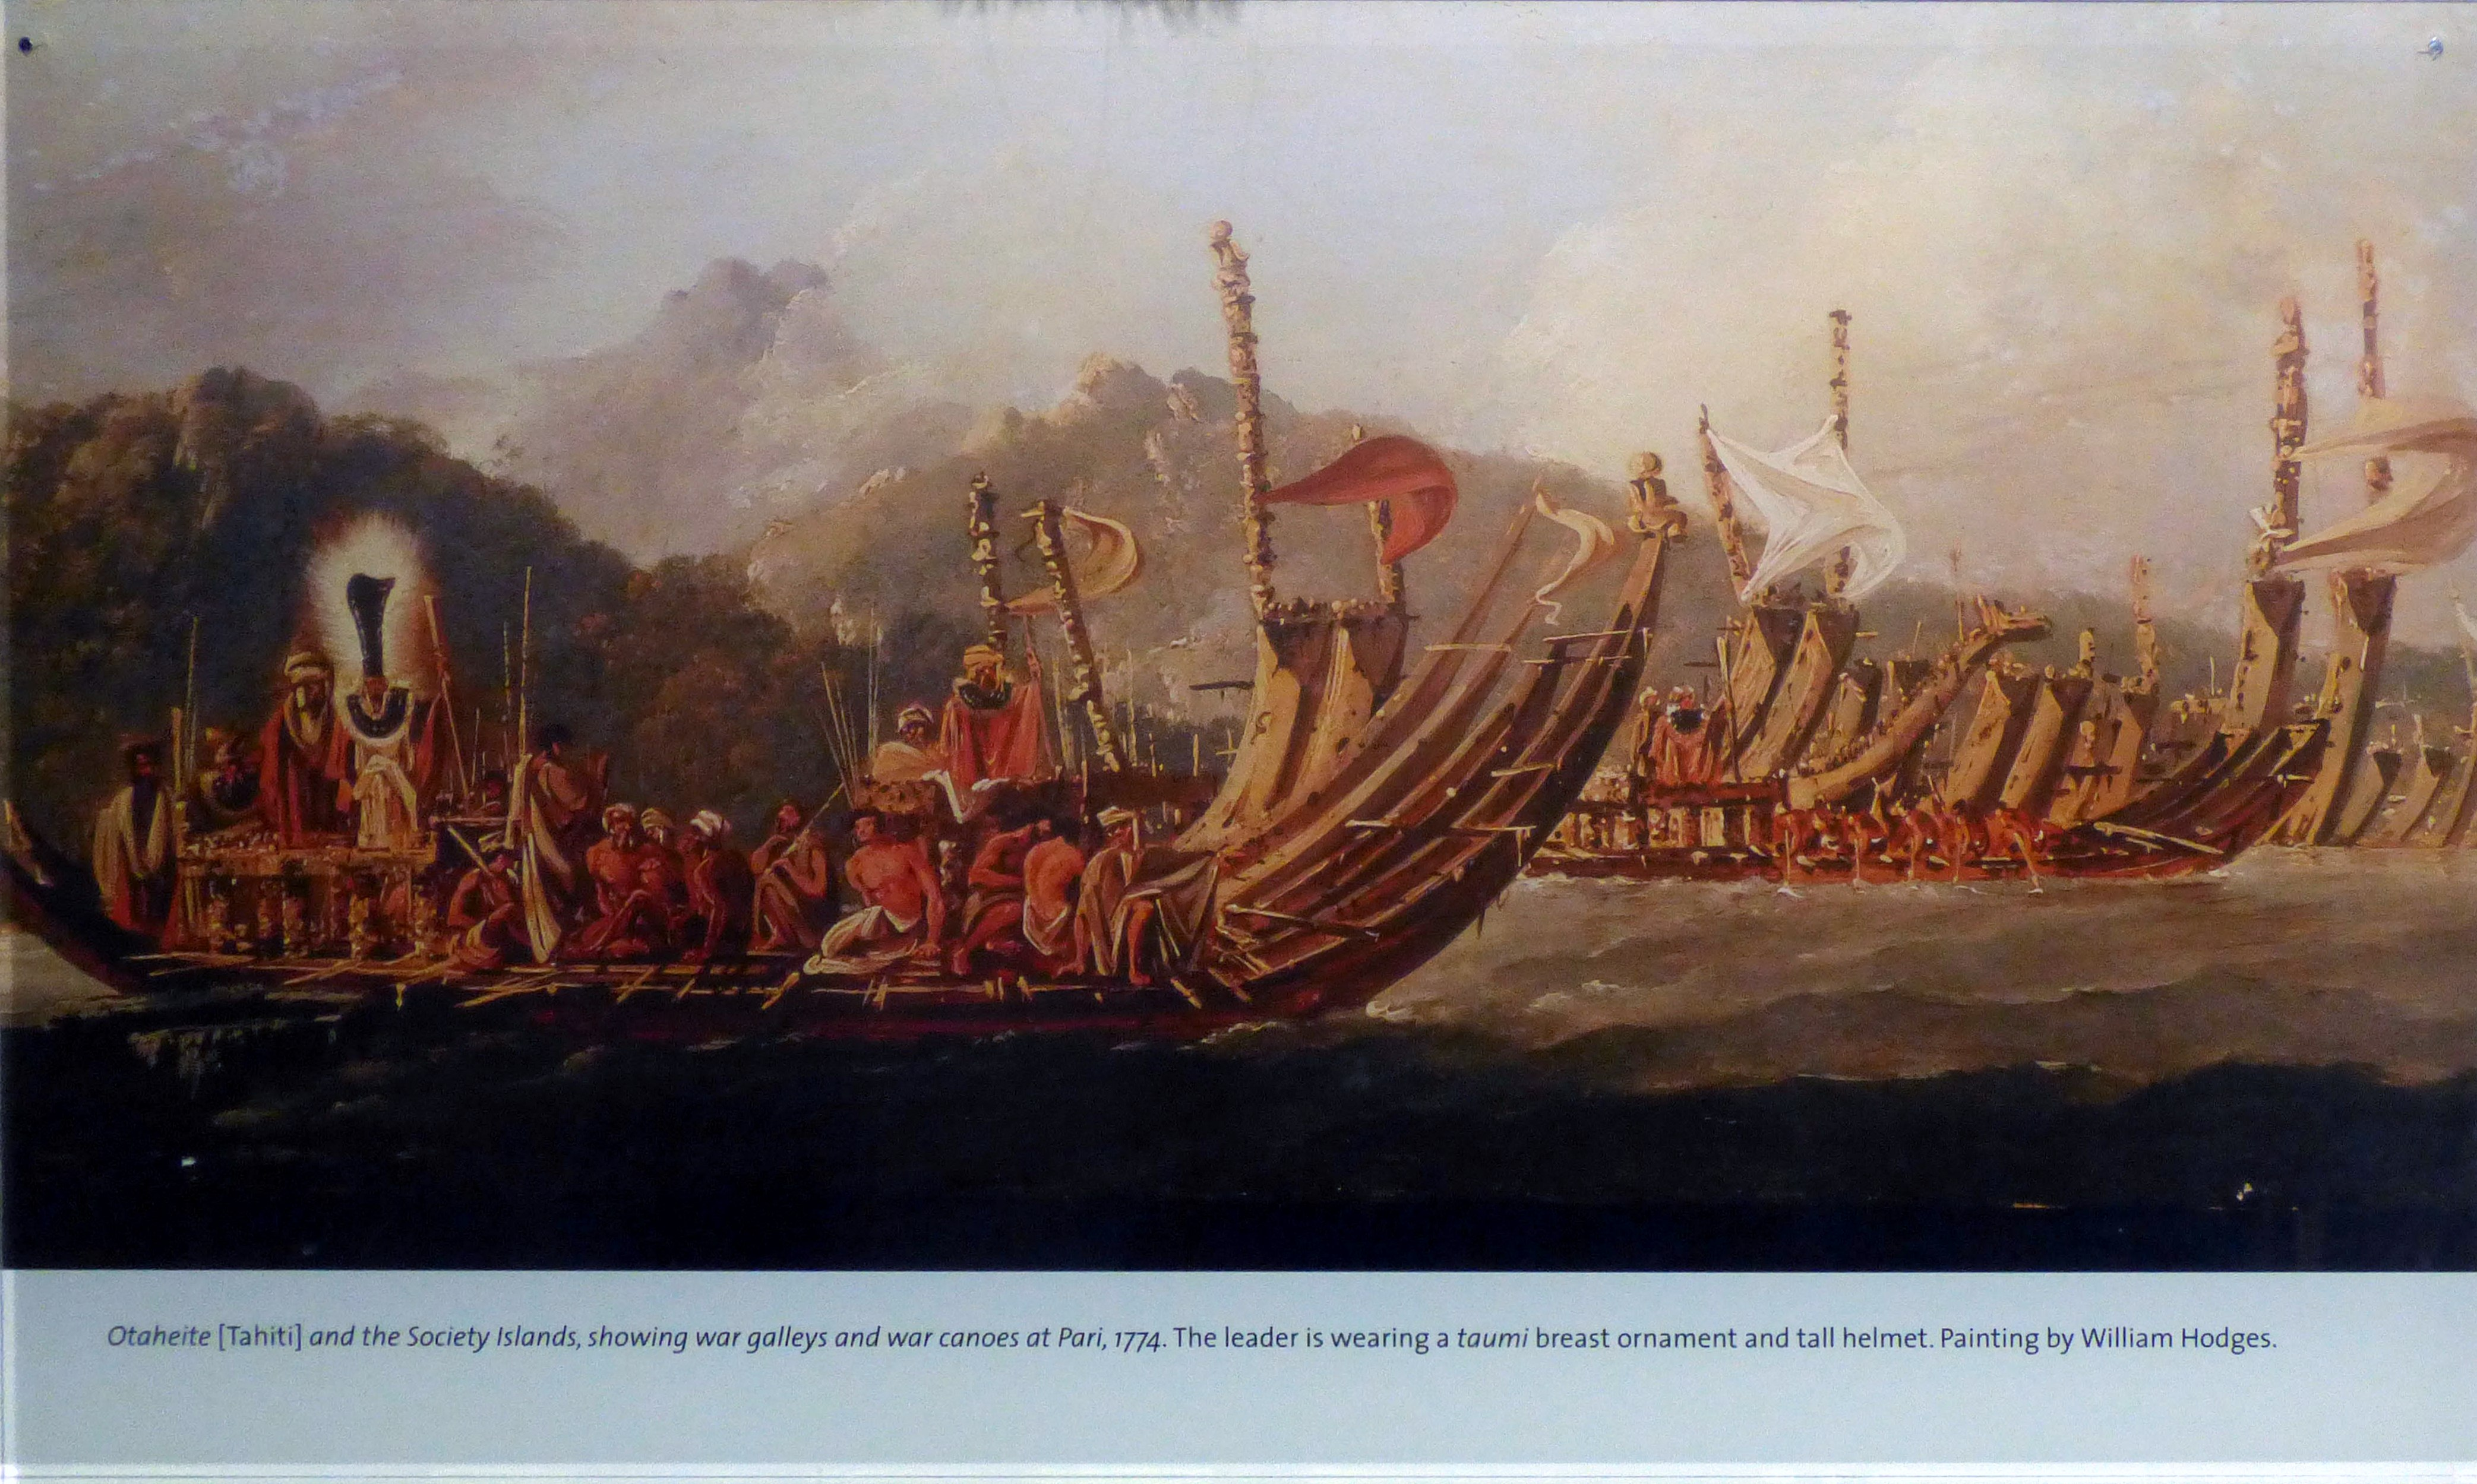 Painting by William Hodges depicting Tahiti and war canoes 1774, The leader is wearing a breast ornament and helmet, MEG behind the scenes tour at Liverpool World Museum, 2018